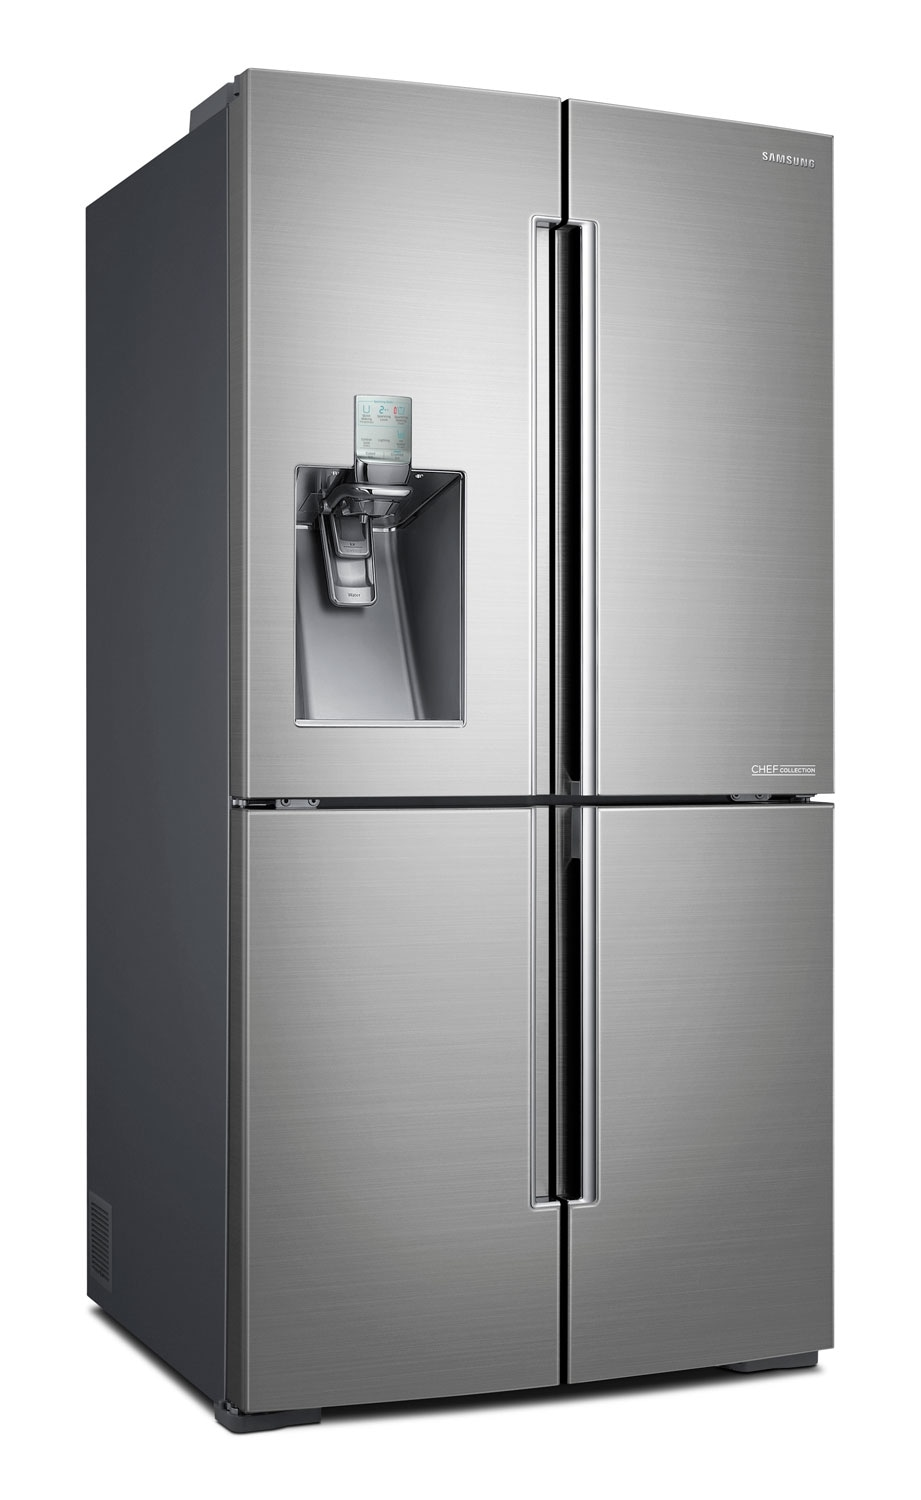 Refrigerators and Freezers - Samsung Stainless Steel French Door Refrigerator (34.3 Cu. Ft.) - RF34H9960SR